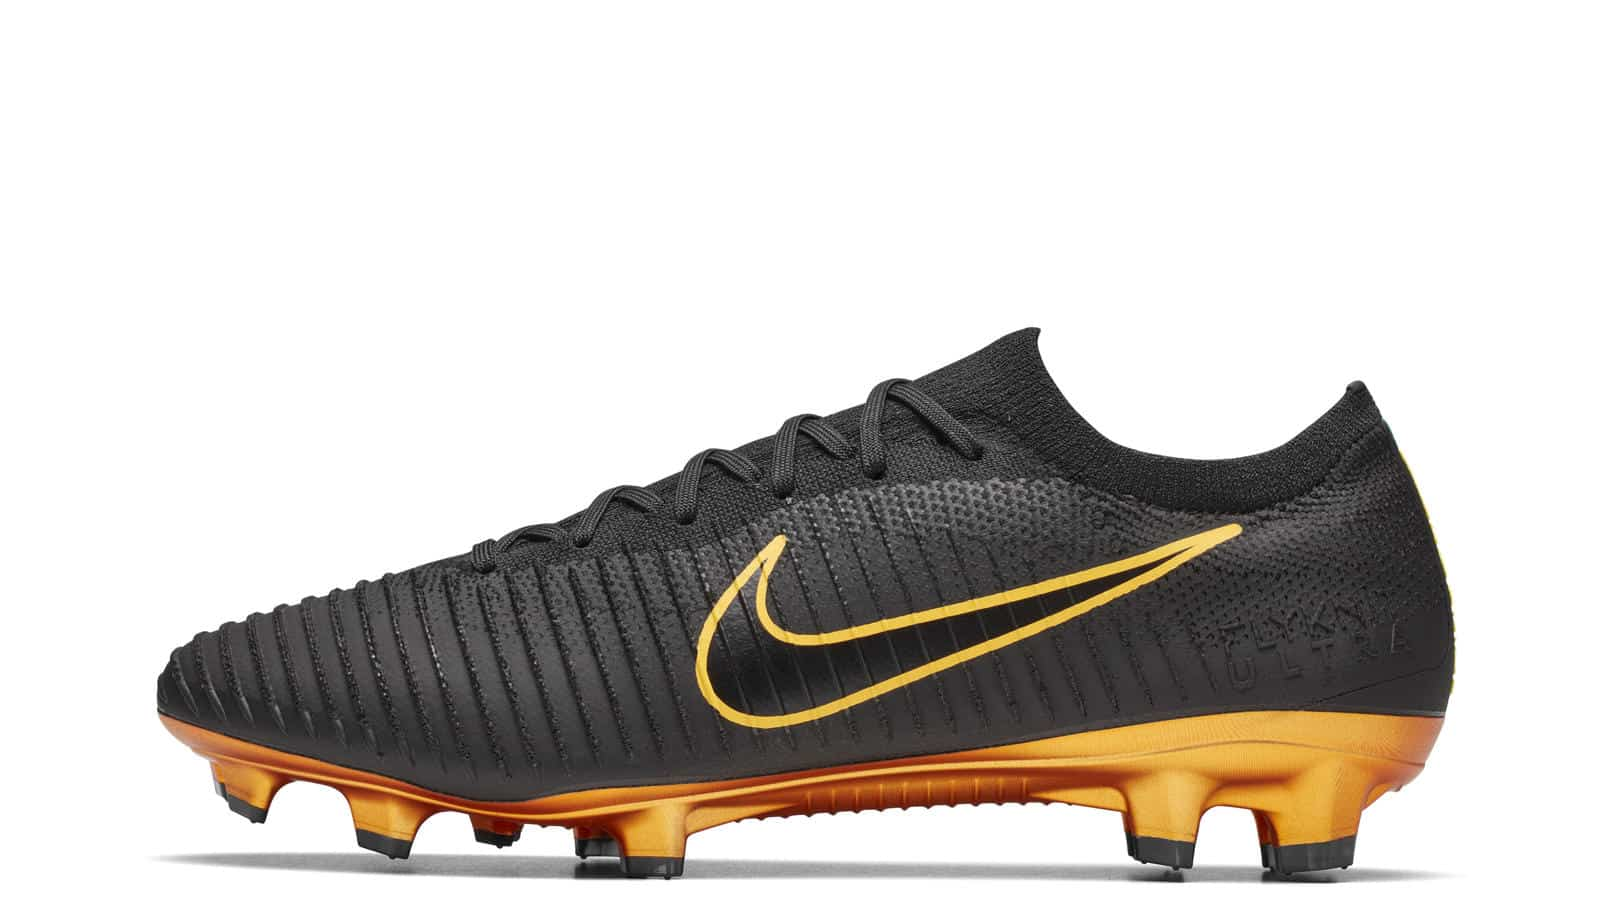 nouvelle-nike-mercurial-vapor-flyknitultra-edition-limitee-2